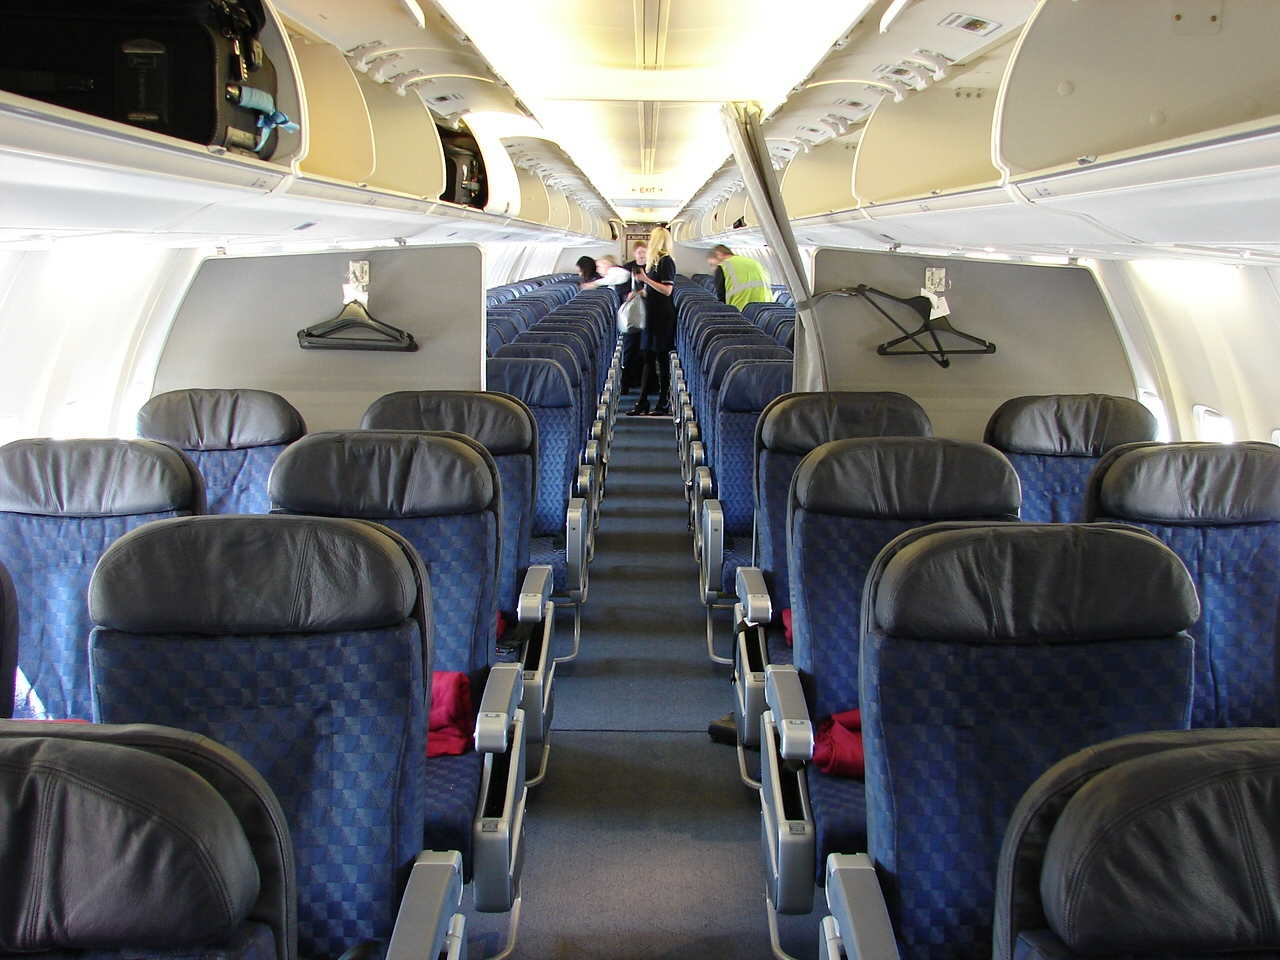 Awesome Interieur Boeing 737 800 Ideas - Trend Ideas 2018 ...